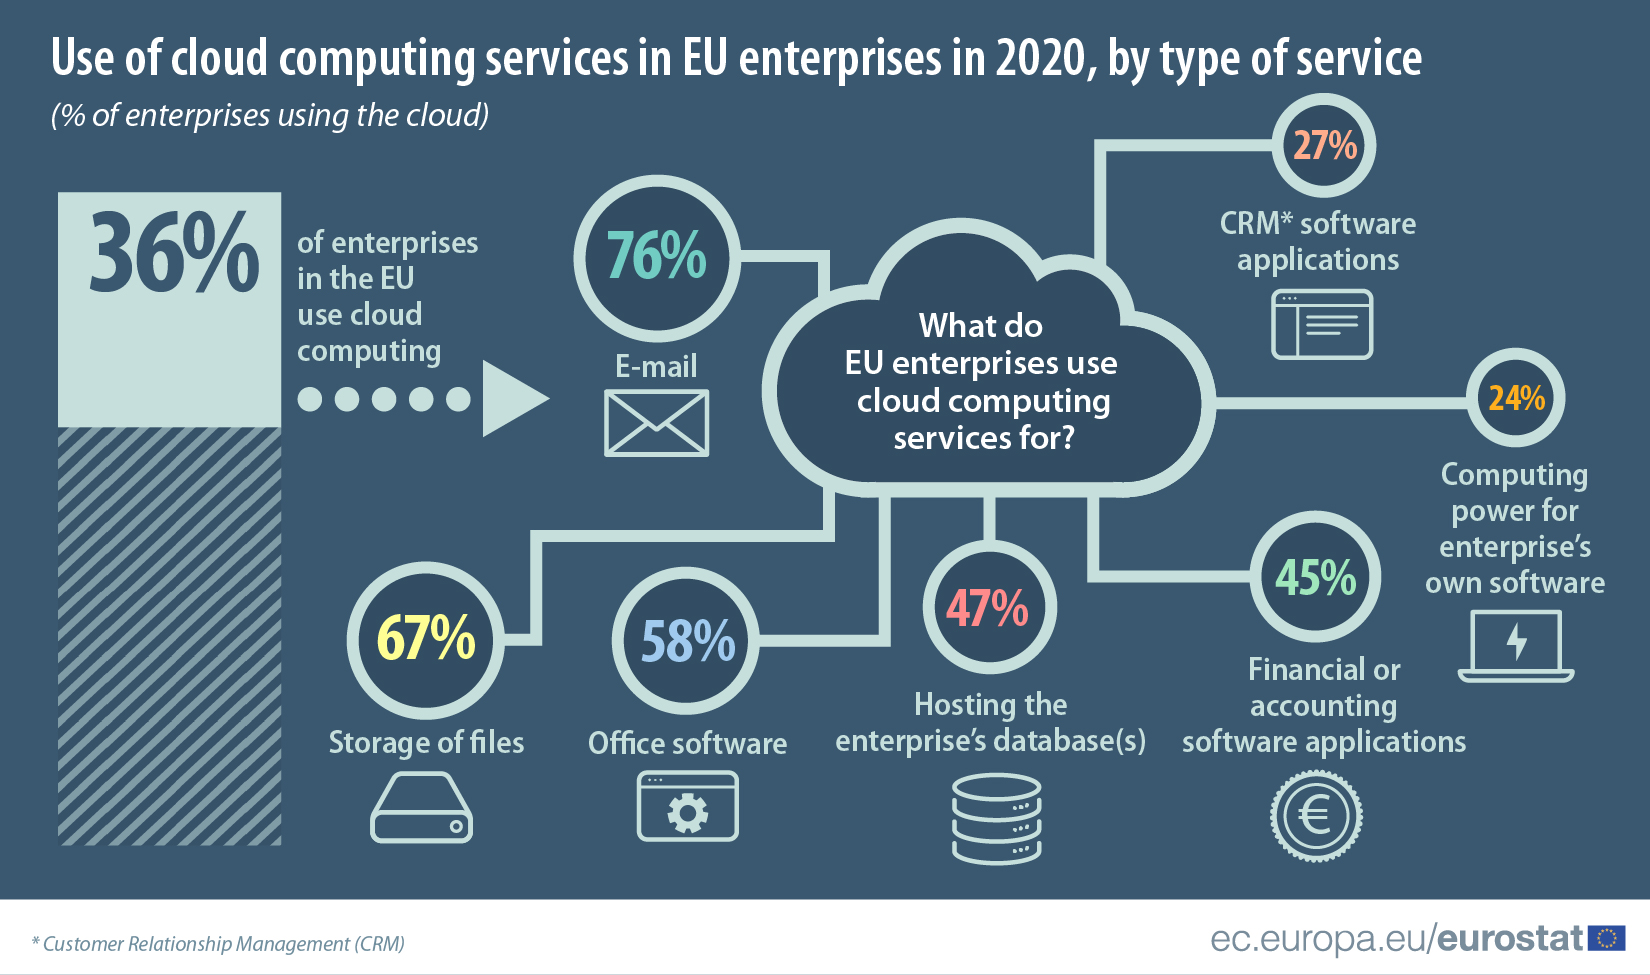 Use of cloud computing services in EU enterprises, by type of service